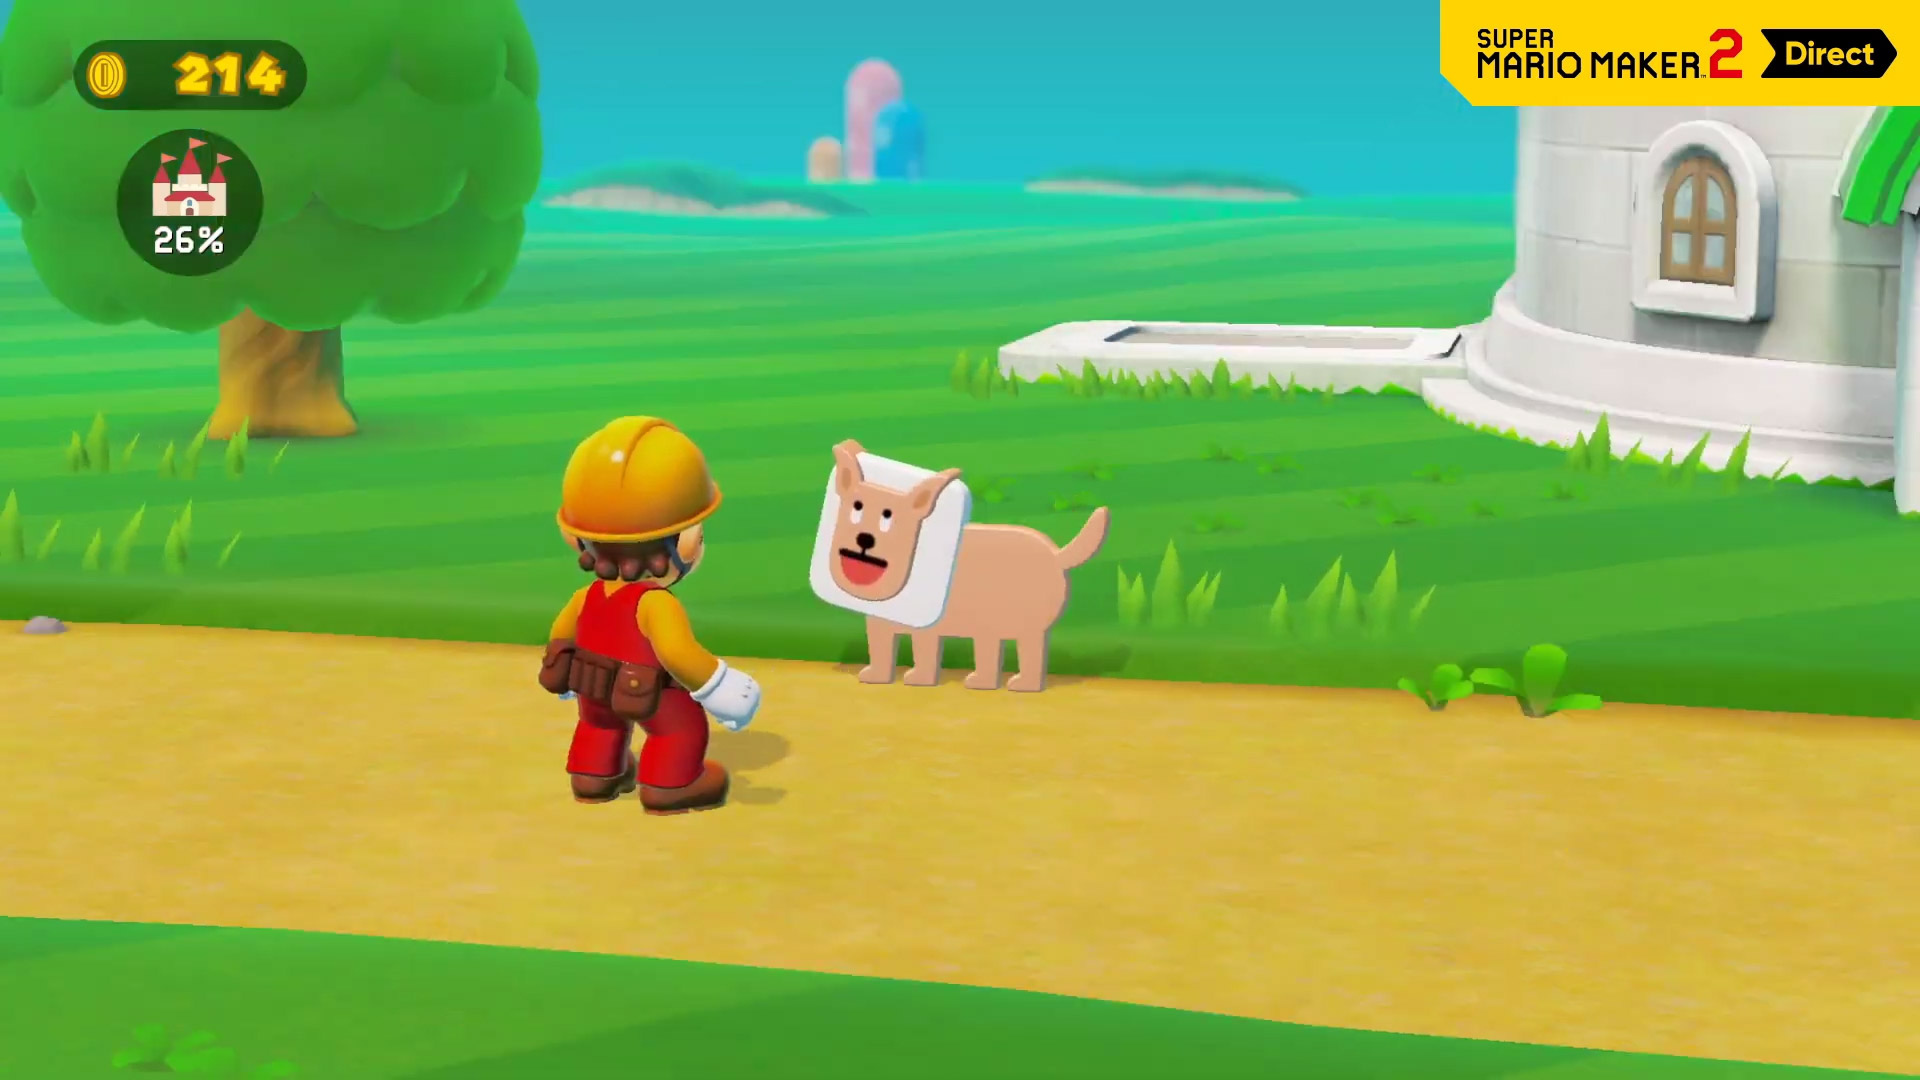 Super Mario Maker 2 goes big with online multiplayer and a story mode screenshot